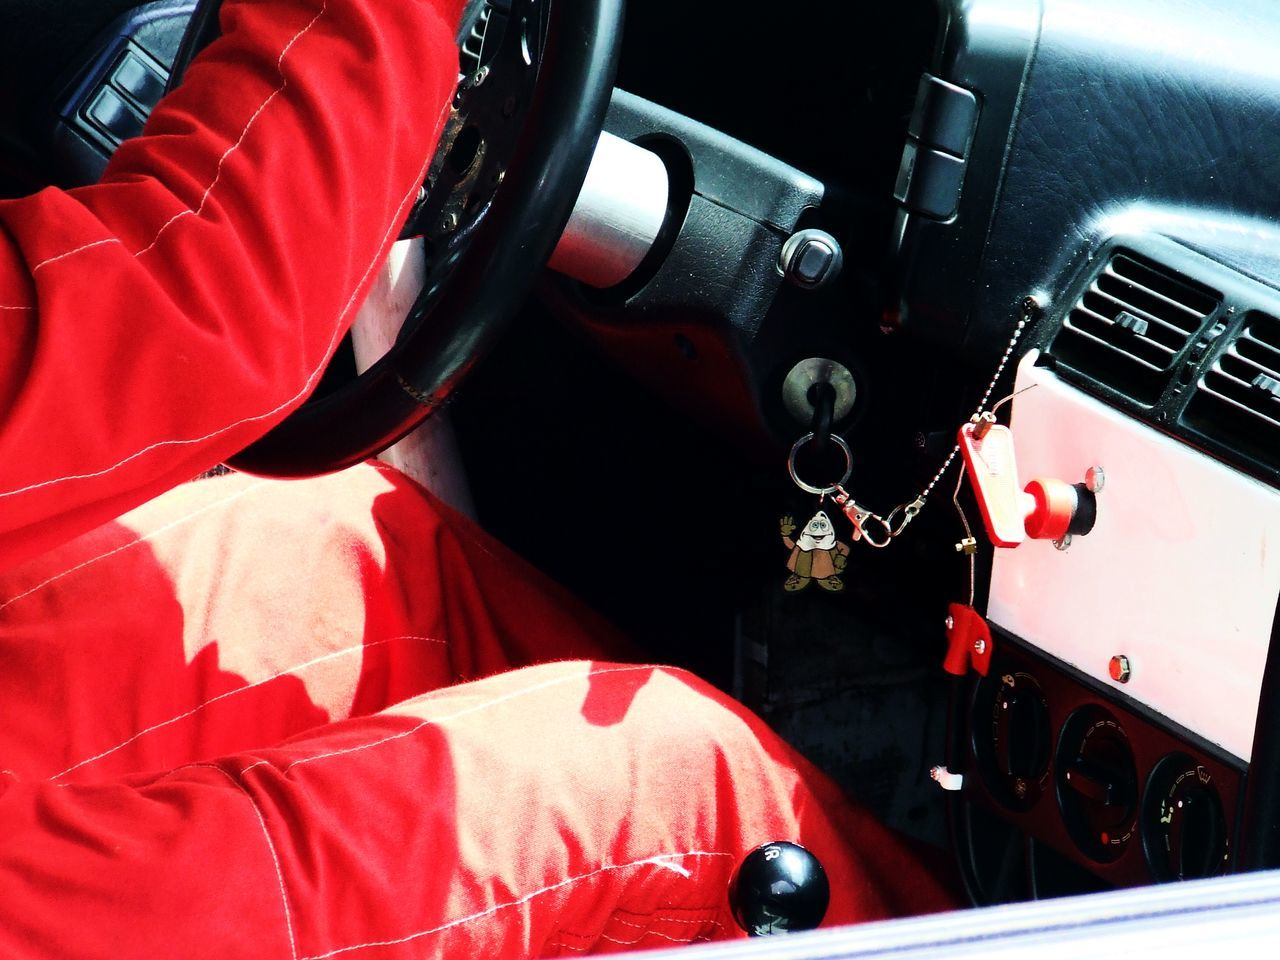 Car Car Driver Coveralls Mode Of Transport Race Race Car Race Car Driver Racecar Racecar Driver Amaré Rally Rally Car Rally Car Driver Rallycar Rallycar Driver Red Transportation The Drive